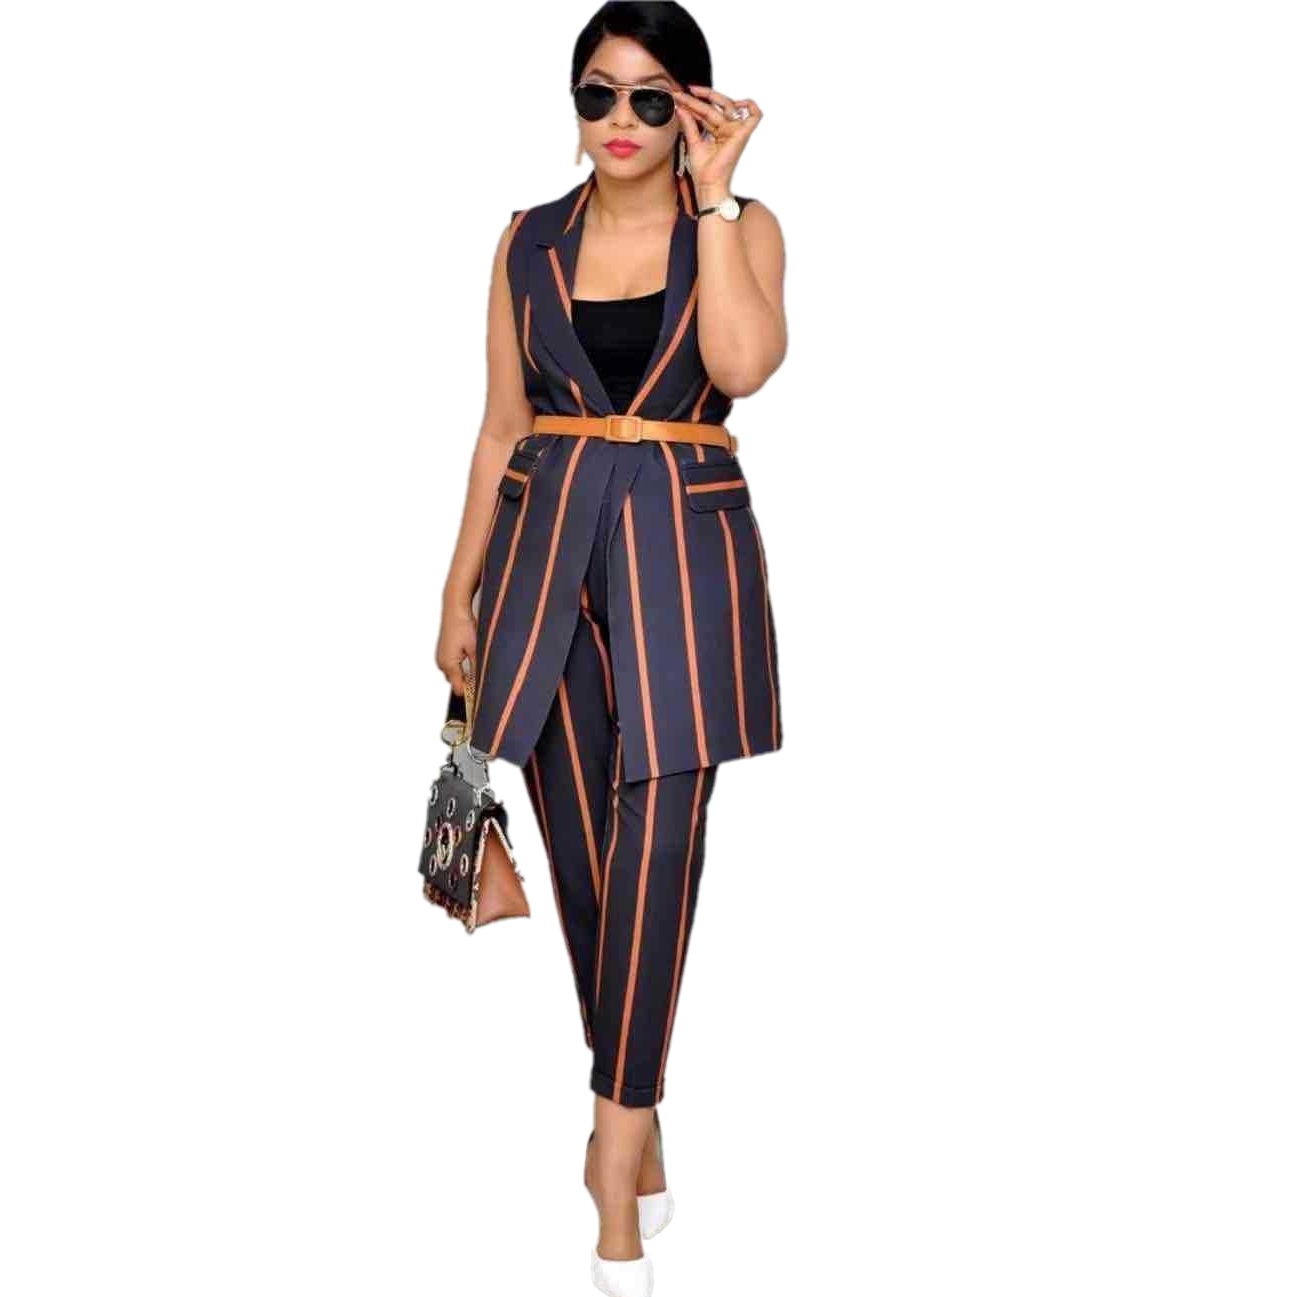 2 Pieces Set Sexy Spring Autumn Fashion Women Set Female Tops Stripe Print Sleeveless Vest Bodycon Stripe Pants Chic Suits